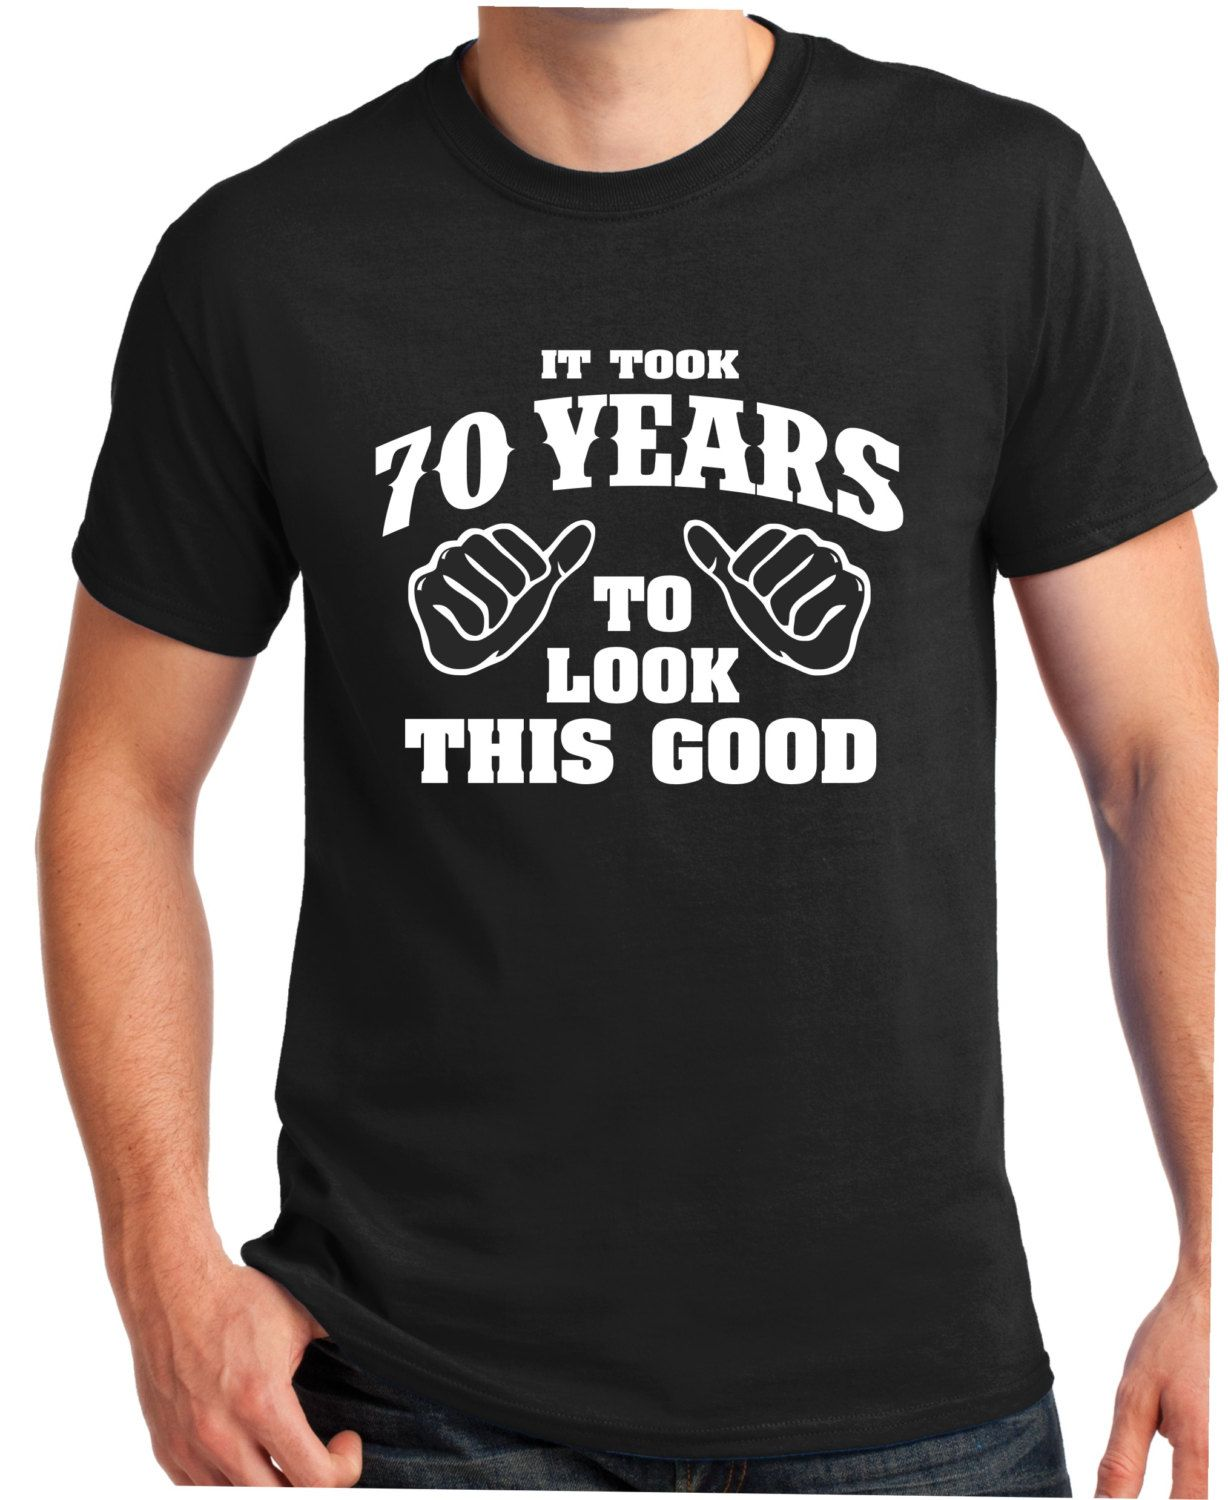 70th Birthday Gift Turning 70 Years Old To Look This Good 1945 Shirt Tee T For Him Funny Old1945 By BluYeti On Etsy